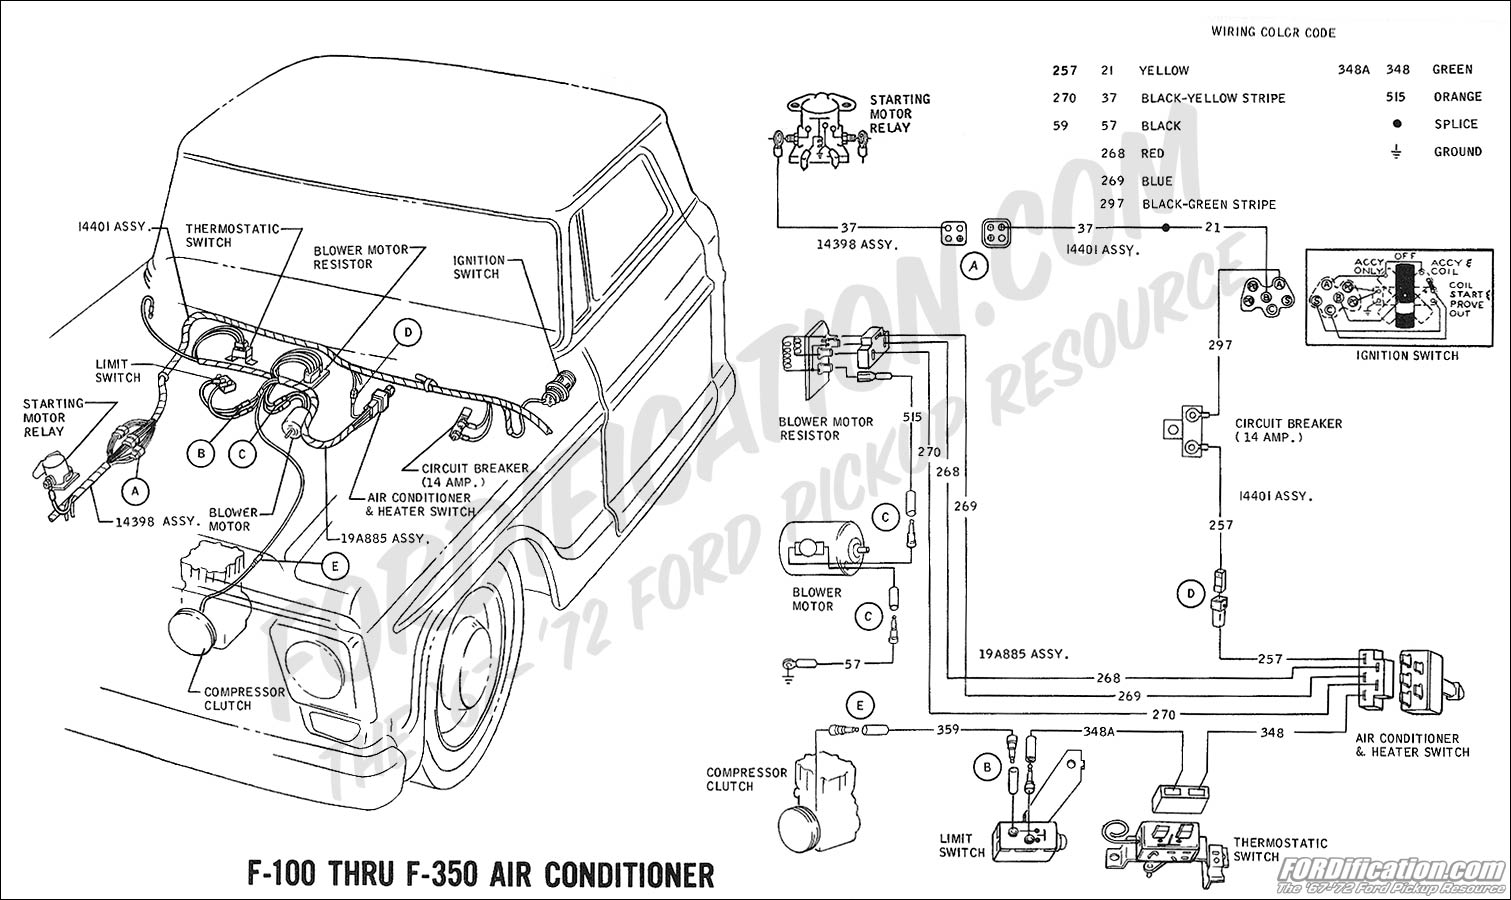 1997 Ford Explorer Fuse Diagram Air Conditioner Wiring Diagrams 00 F350 Box F 150 Free Engine 2000